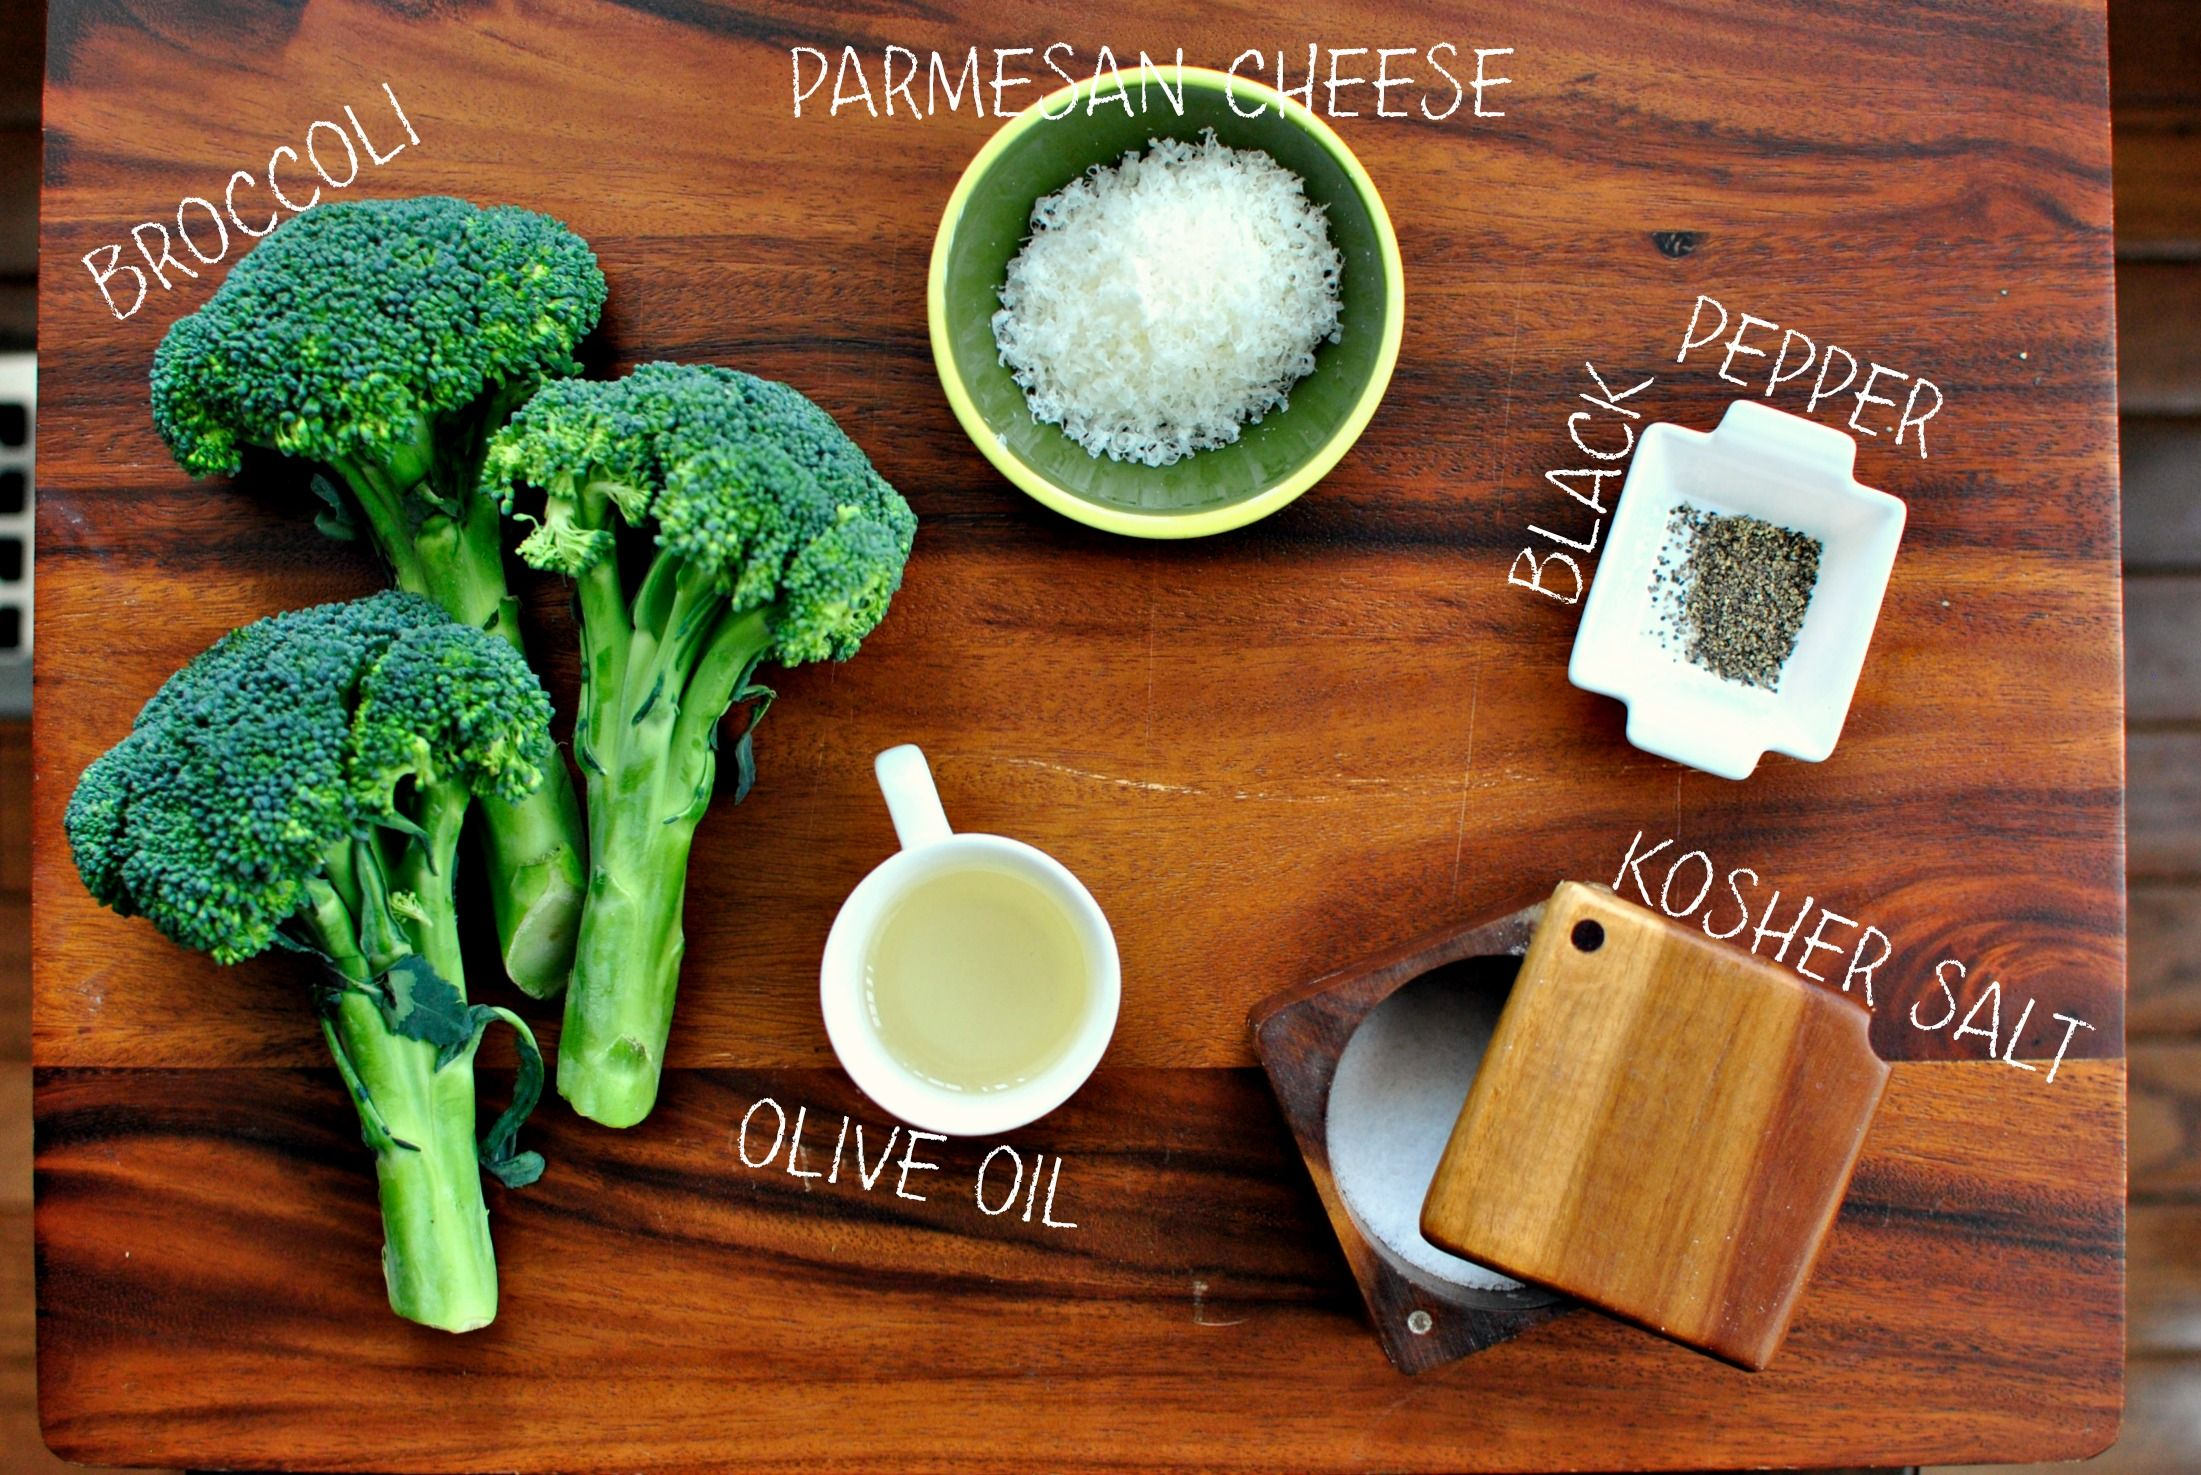 www.simplyscratch.com wp-content uploads 2014 01 The-Best-Roasted-Broccoli-l-www.SimplyScratch.com-ingredients1.jpg